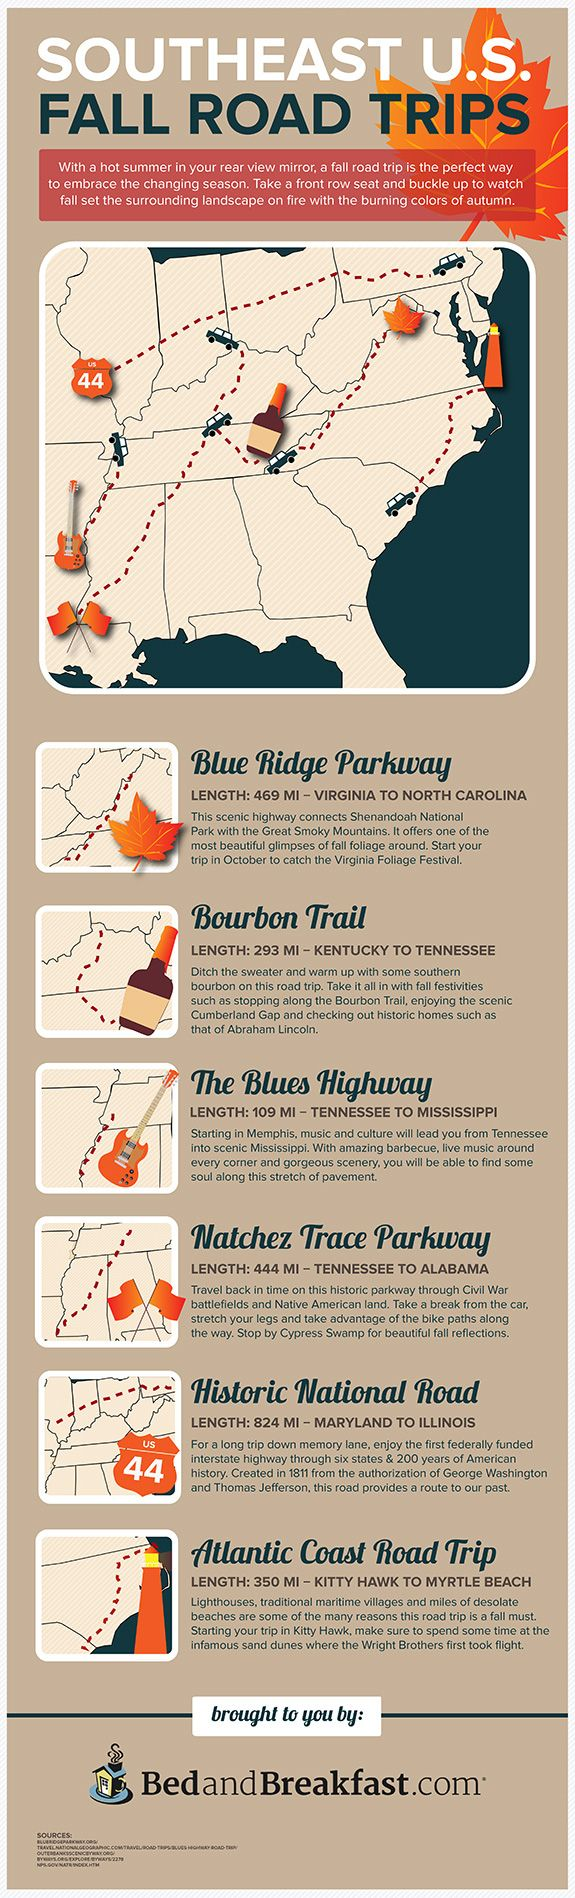 Fall Road Trip Ideas [Infographic] Explore 5 unique road trip routes in the South East U.S., from a bourbon tour to the Blues Highway.